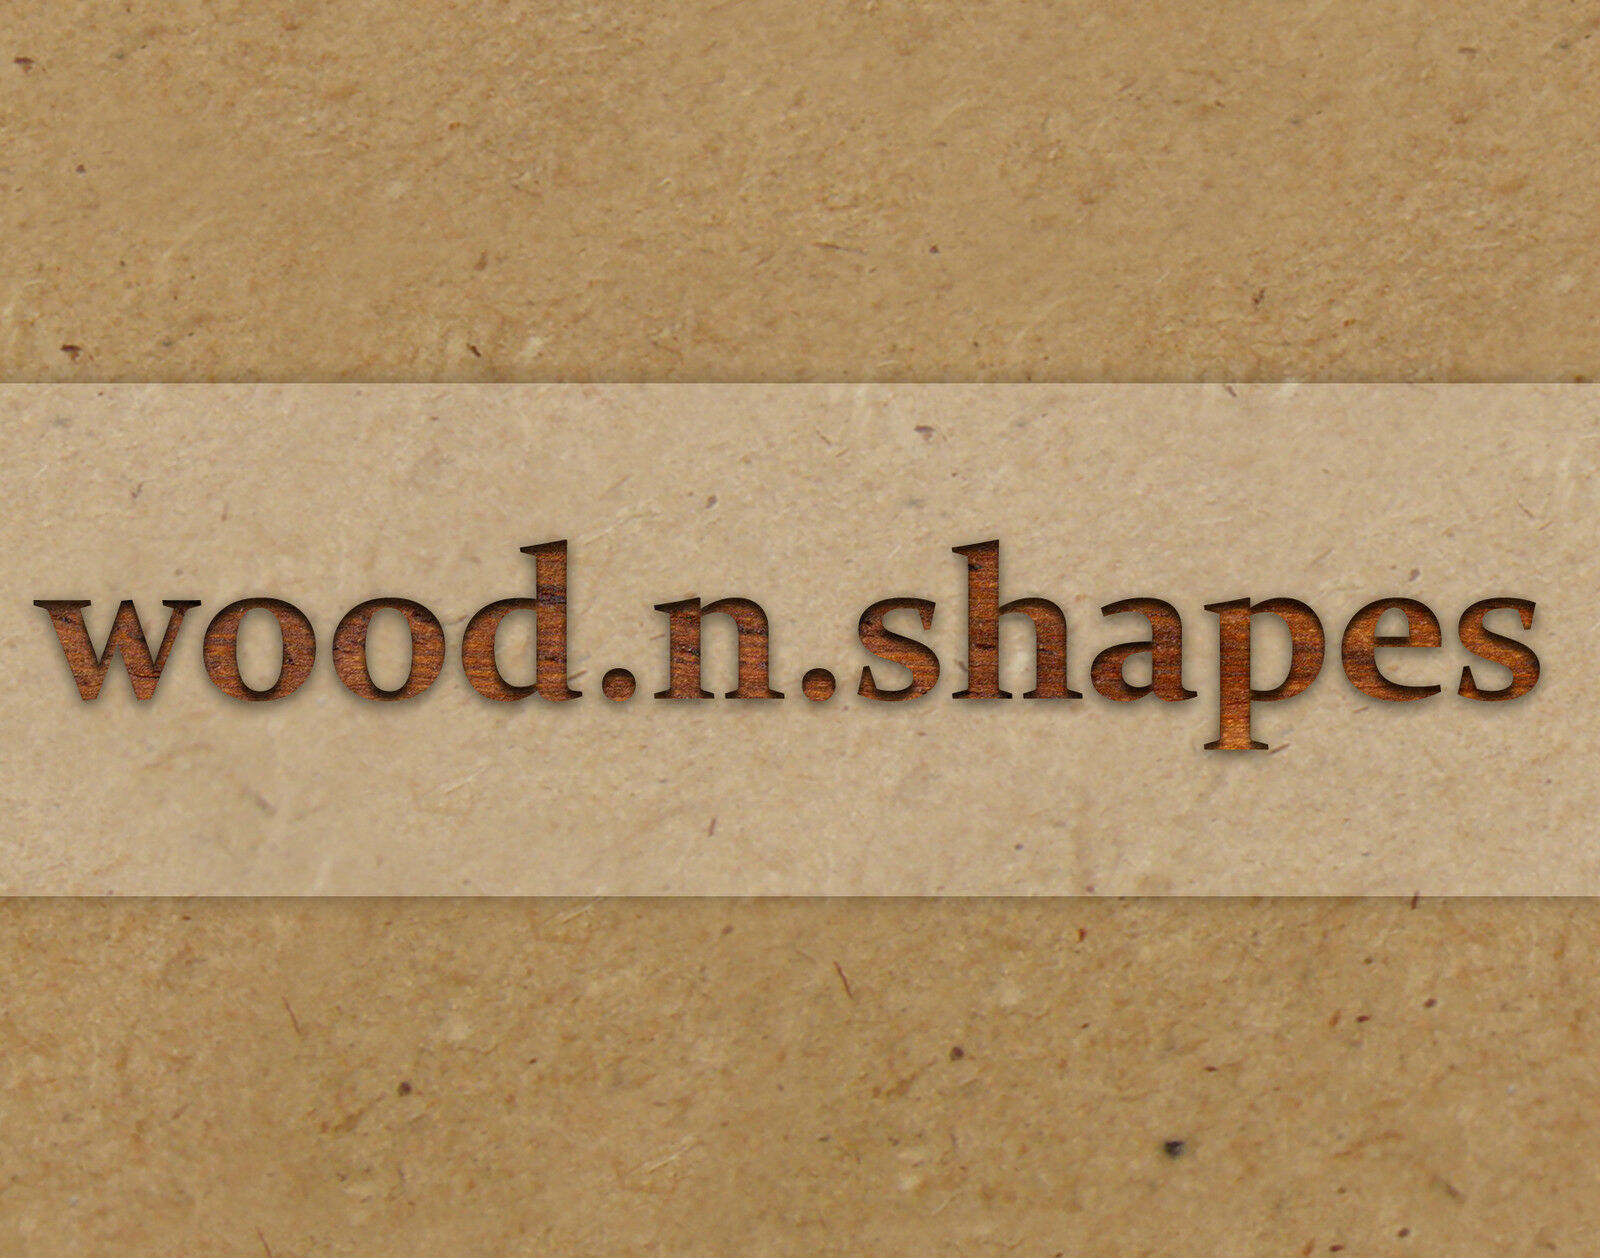 wood.n.shapes